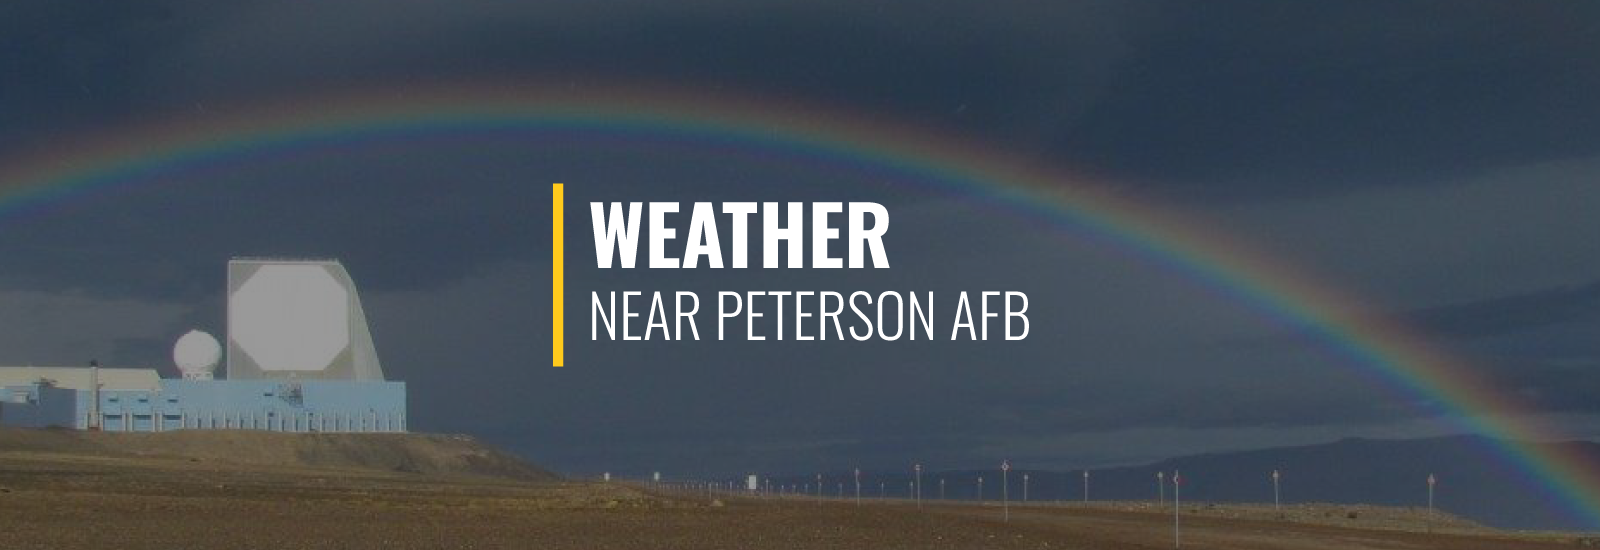 Peterson AFB Weather